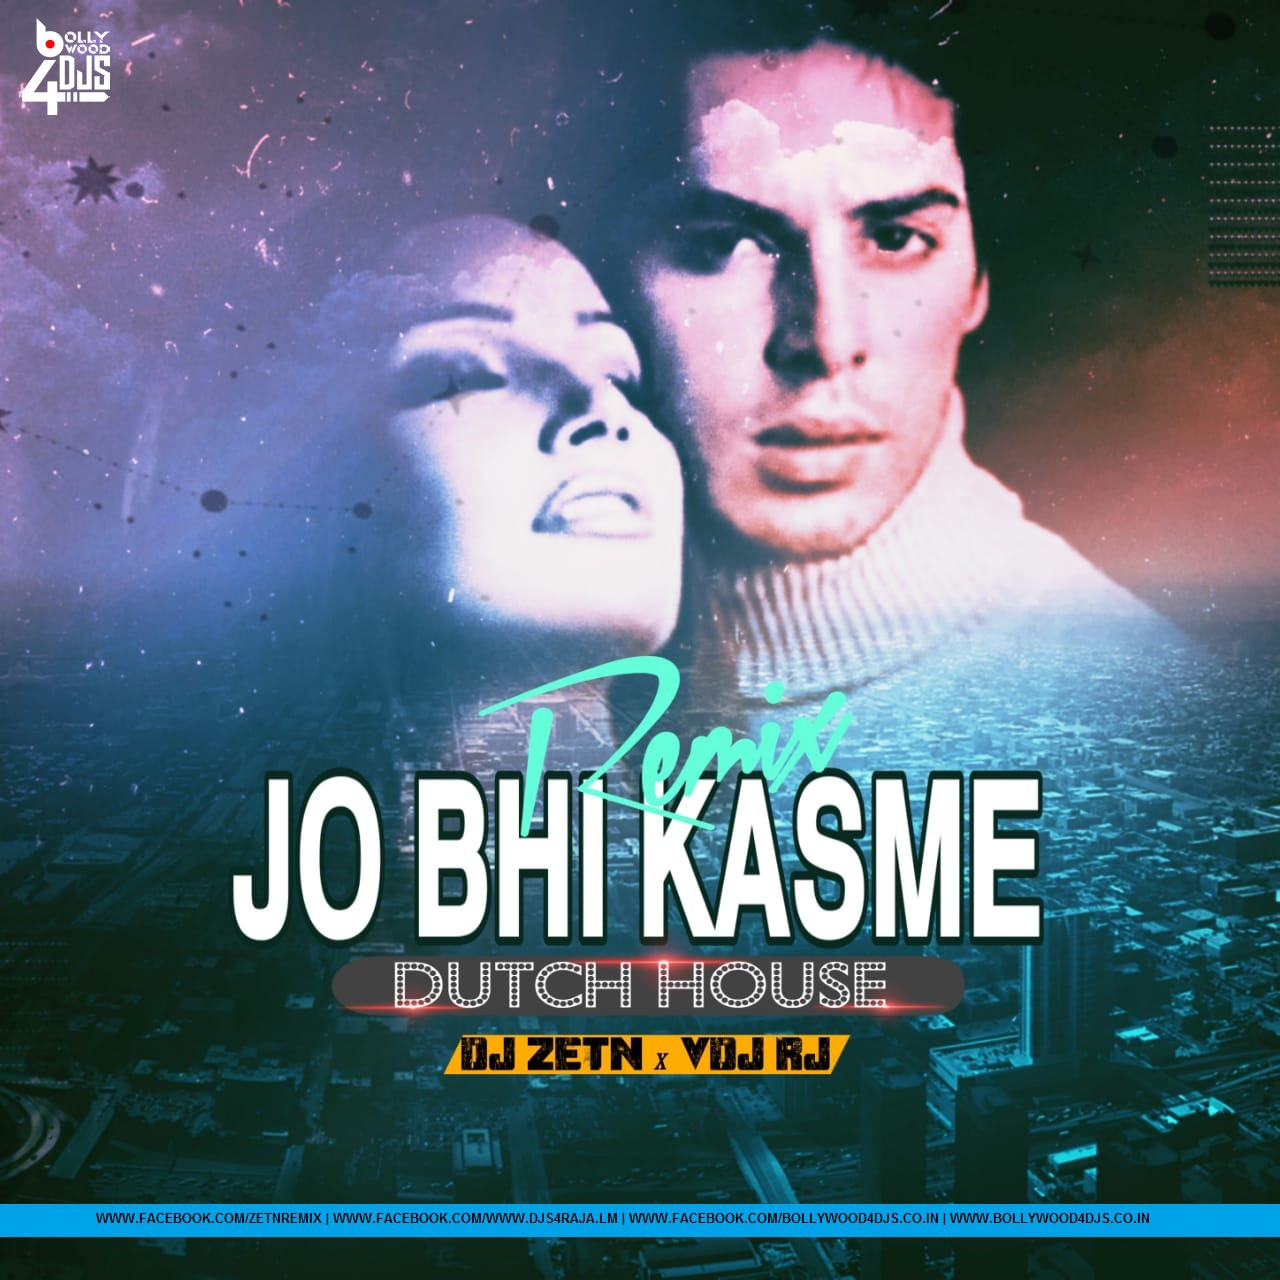 Jo Bhi Kasmein (Dutch House) - DJ ZETN x DJ VFX RJ.mp3